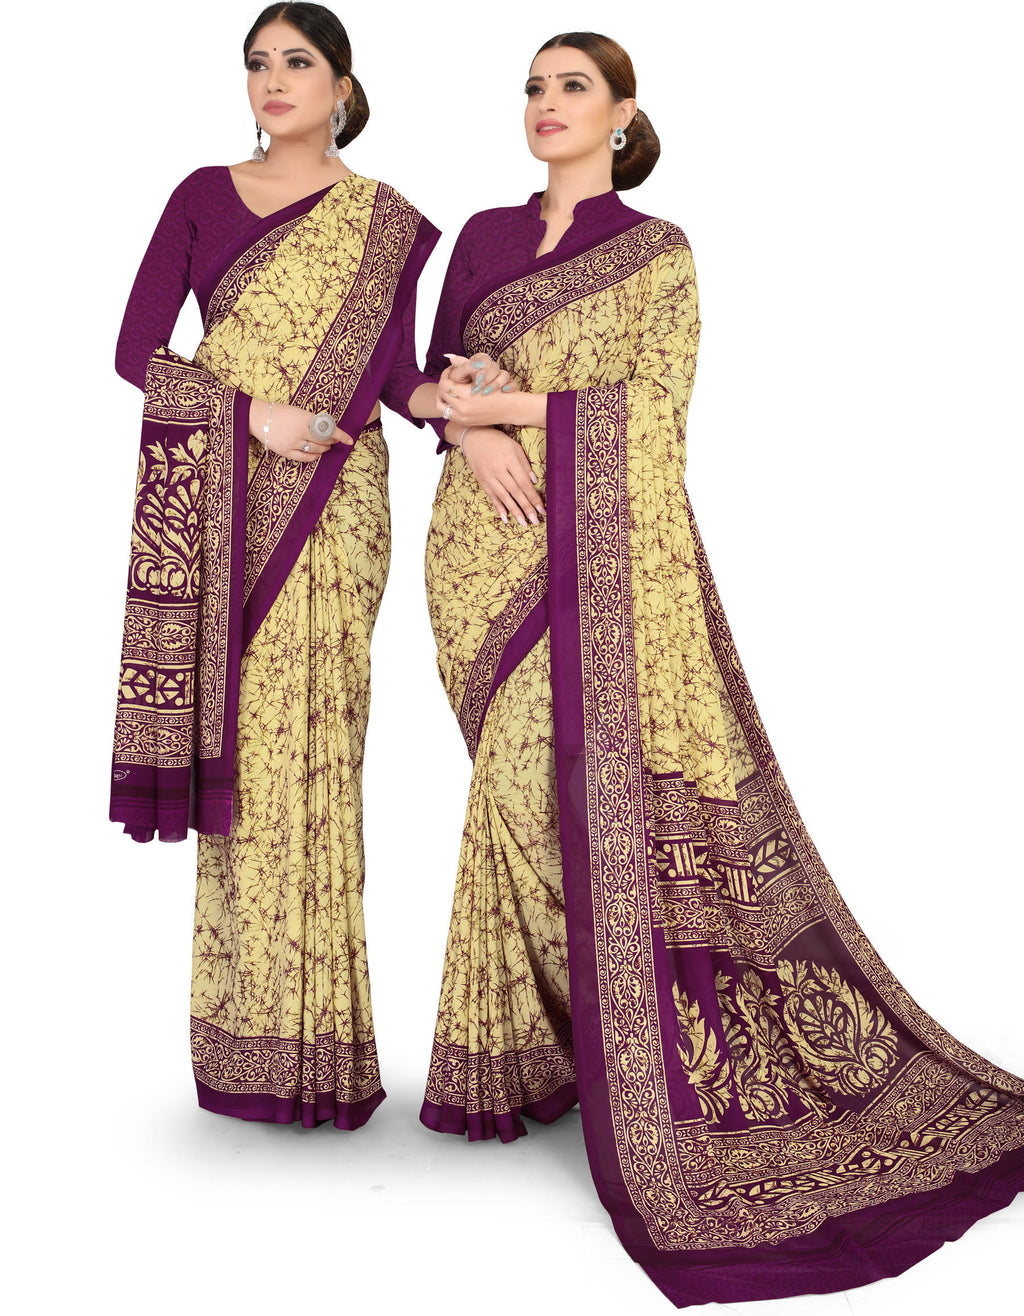 Light Yellow & Purple Color Crepe Chiffon Daily Wear Printed Sarees NYF-7774